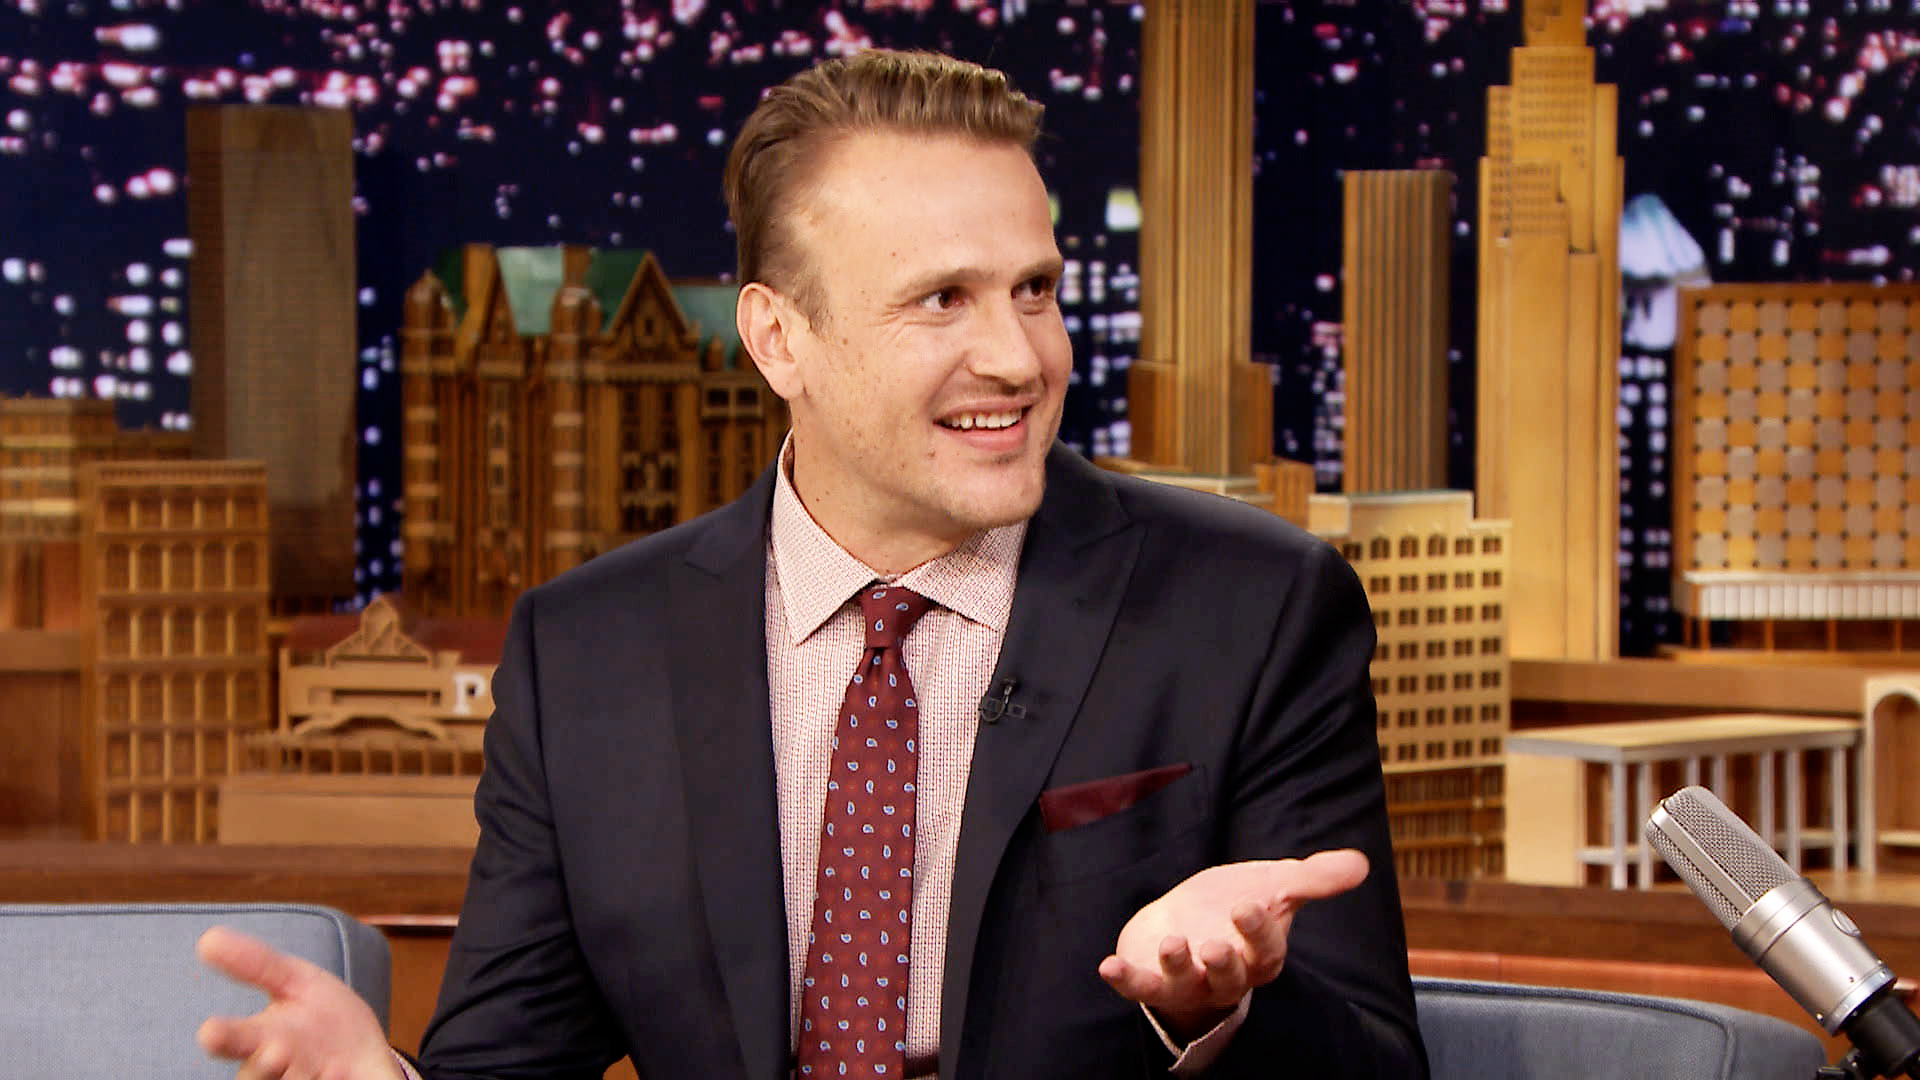 jason segel 2000jason segel twitter, jason segel 2016, jason segel height, jason segel young, jason segel tumblr, jason segel cameron diaz, jason segel basketball, jason segel andy samberg, jason segel in this is the end, jason segel how i met your mother, jason segel linda cardellini, jason segel ernie hudson, jason segel wiki, jason segel movies, jason segel singing, jason segel seth rogen movie, jason segel 2000, jason segel wdw, jason segel photoshoot, jason segel oscar 2017